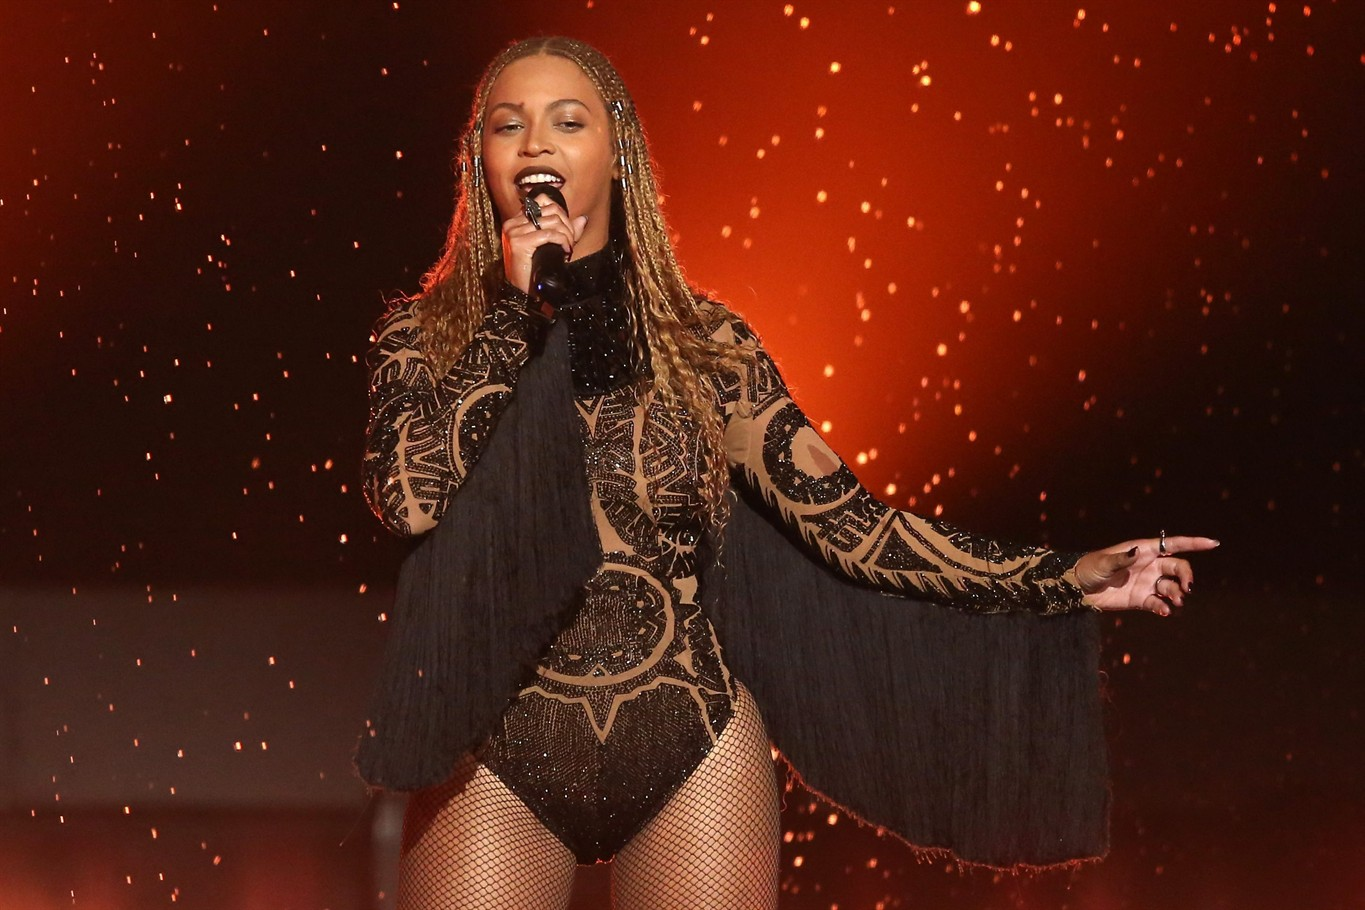 Beyonce, Alicia Keys, Nicki Minaj to perform at Tidal show